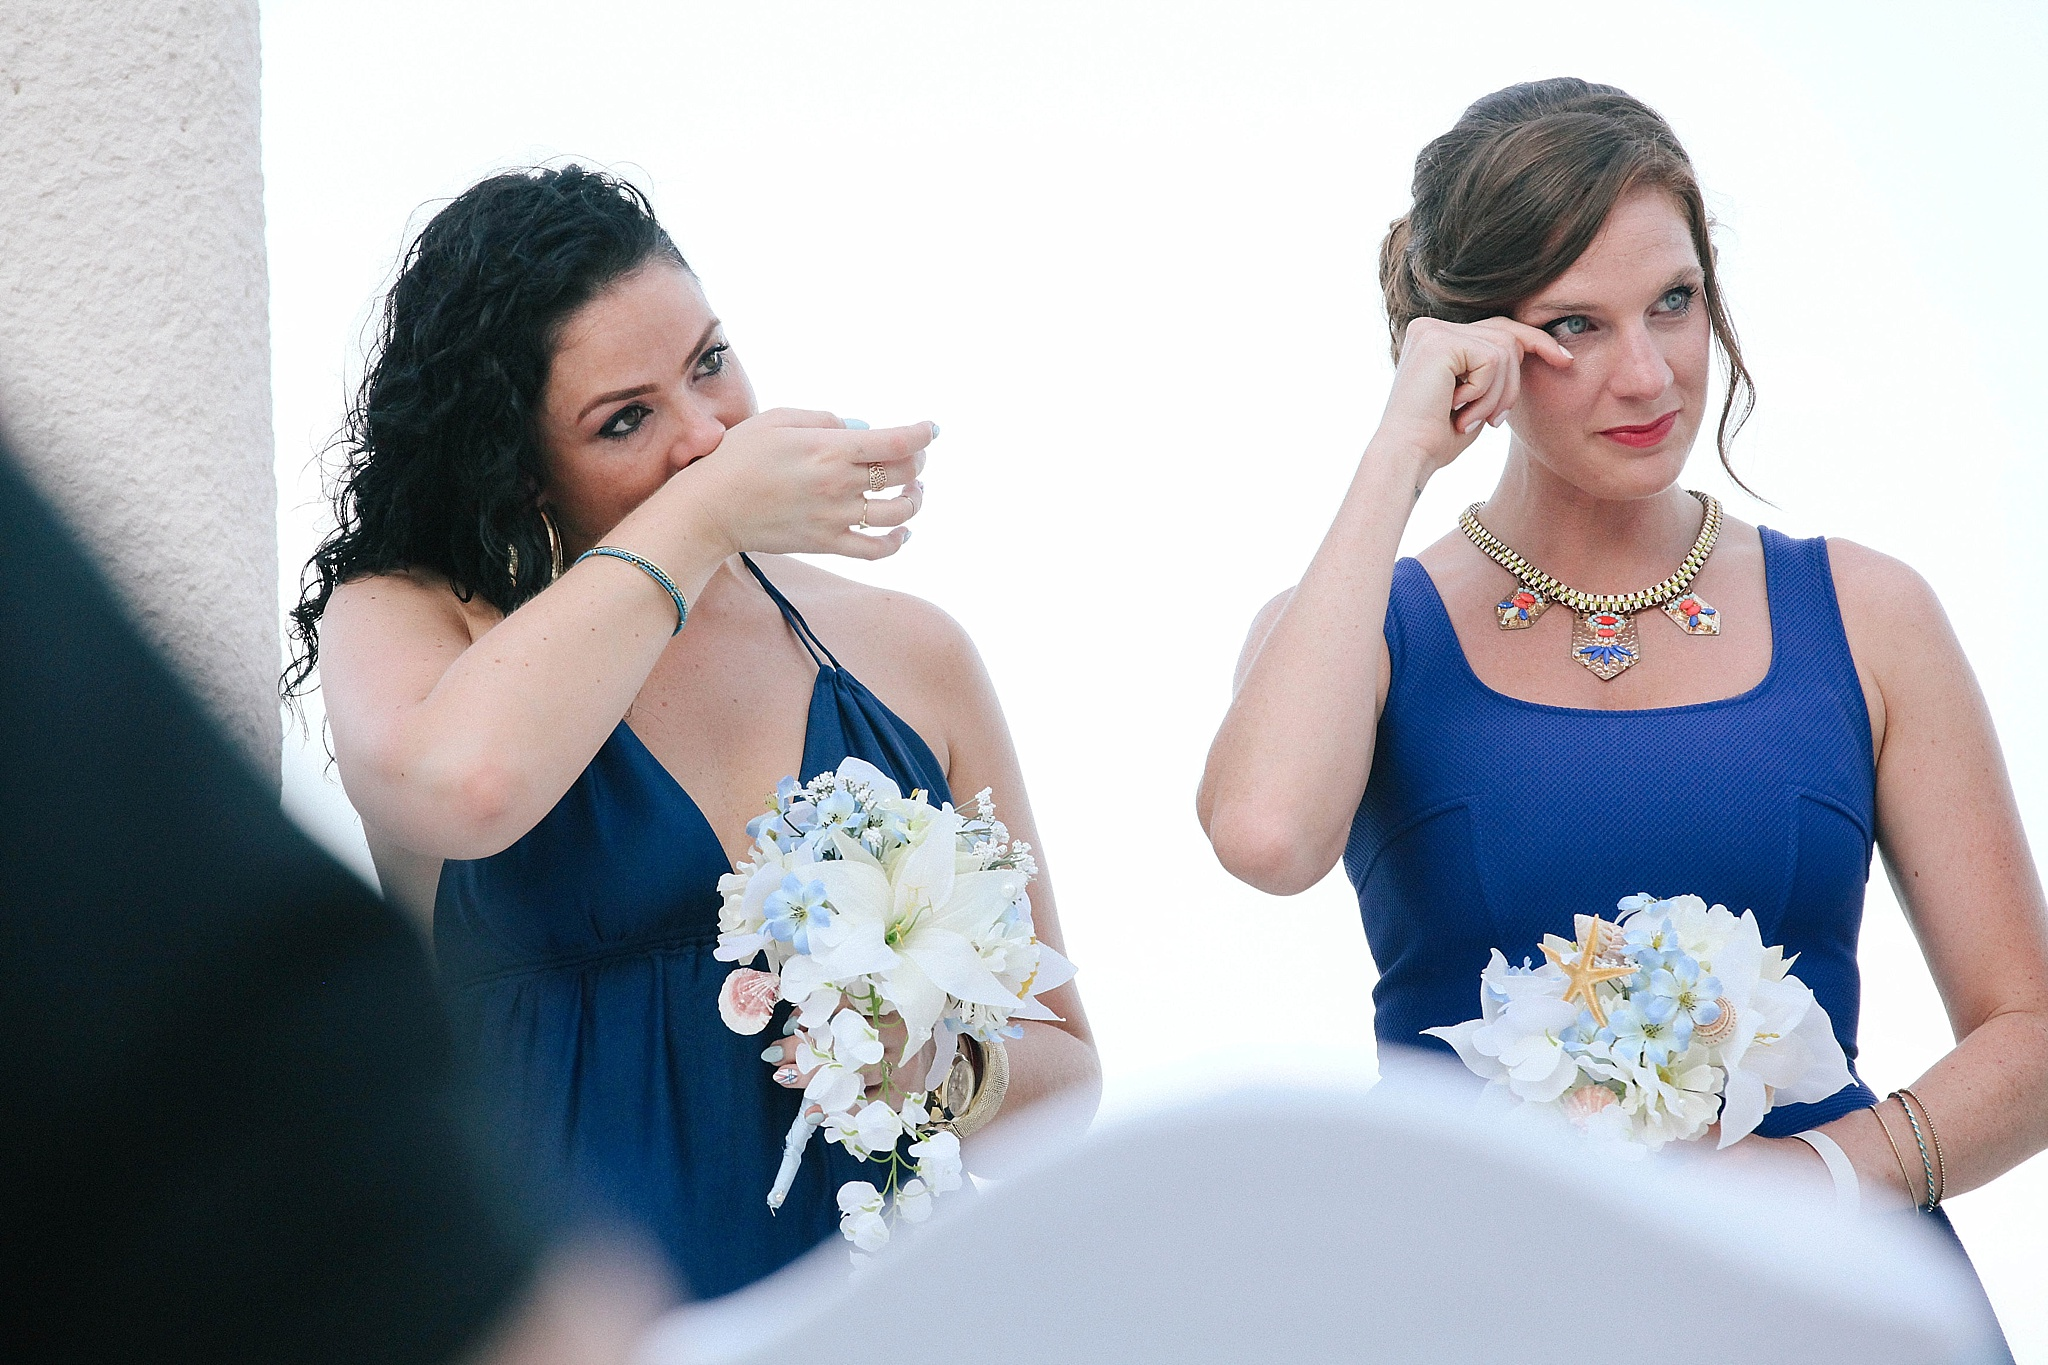 bridesmaids DIY bouquets with seashells at Mexican destination wedding Leah Moyers Photography